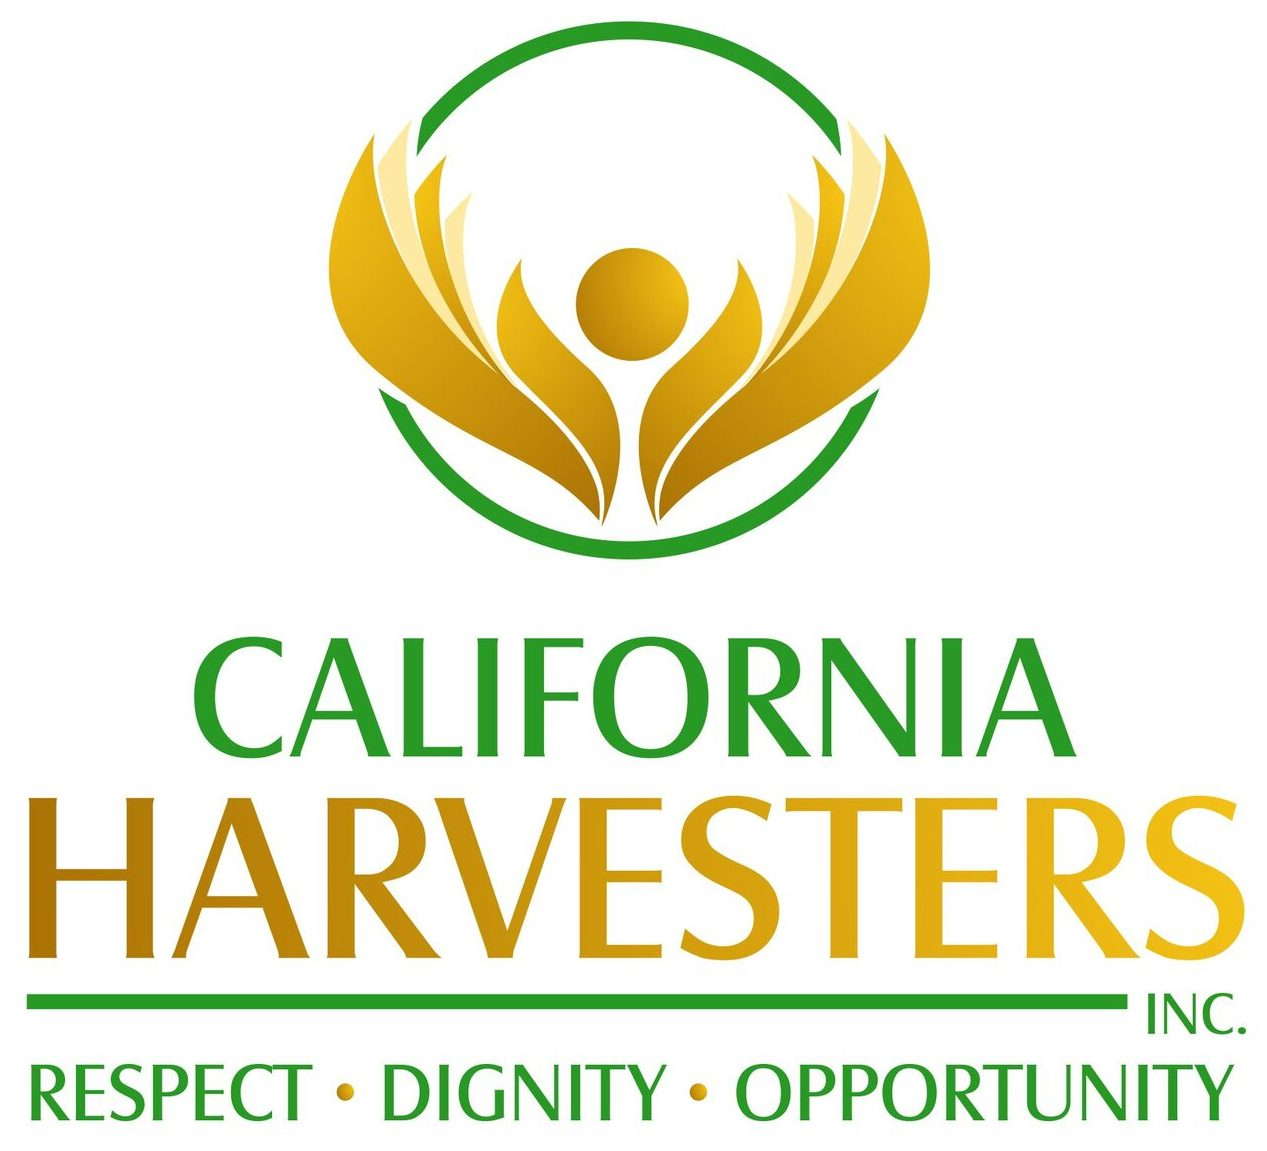 California Harvesters logo